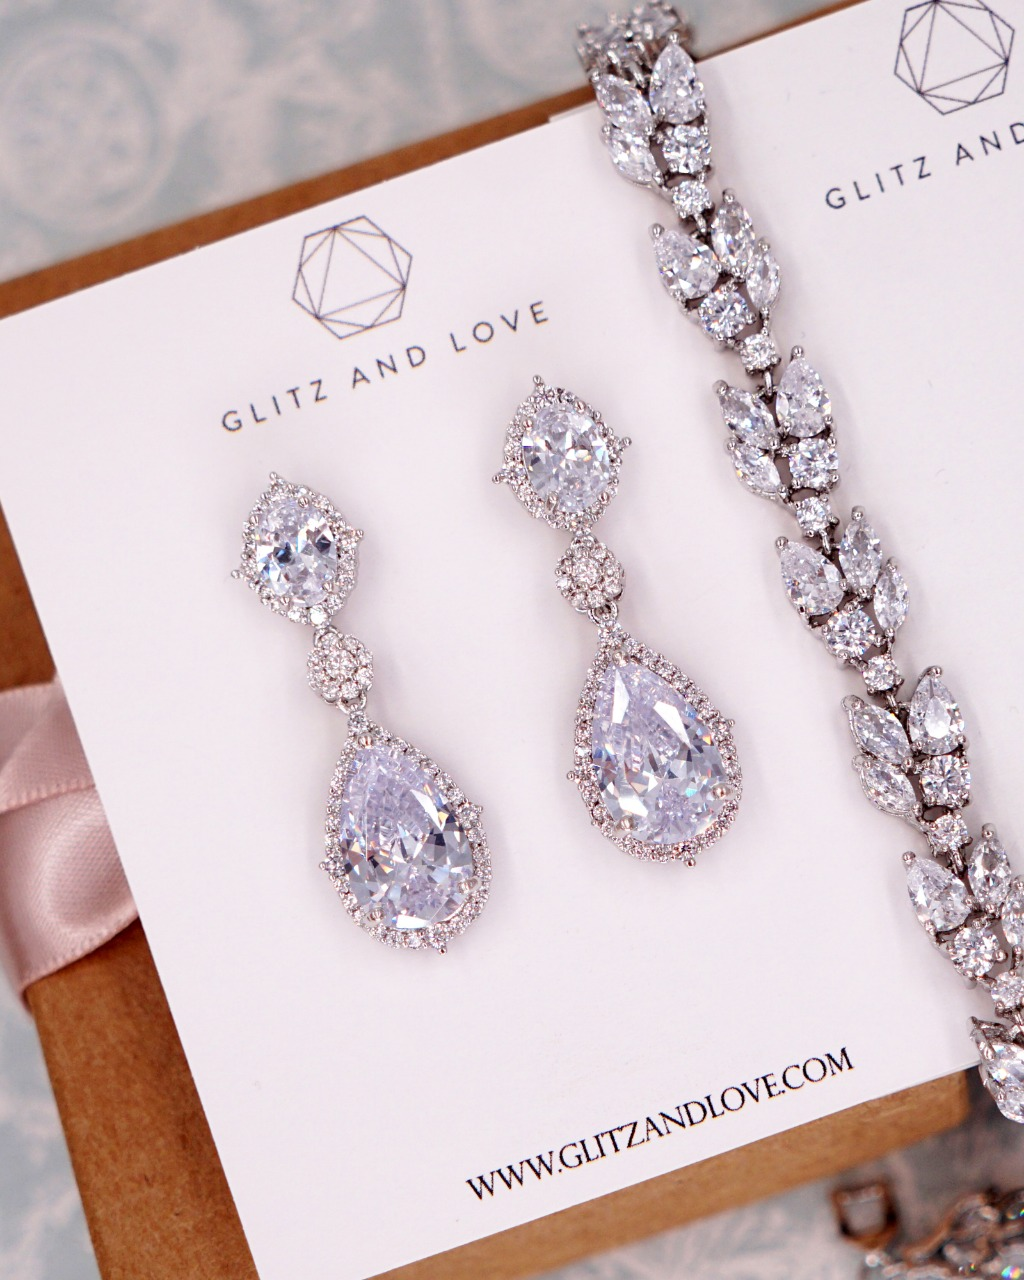 Silver Cubic Zirconia Earrings & Bracelet - Welcome to Glitz & Love where you will find a collection of exquisite and intricately